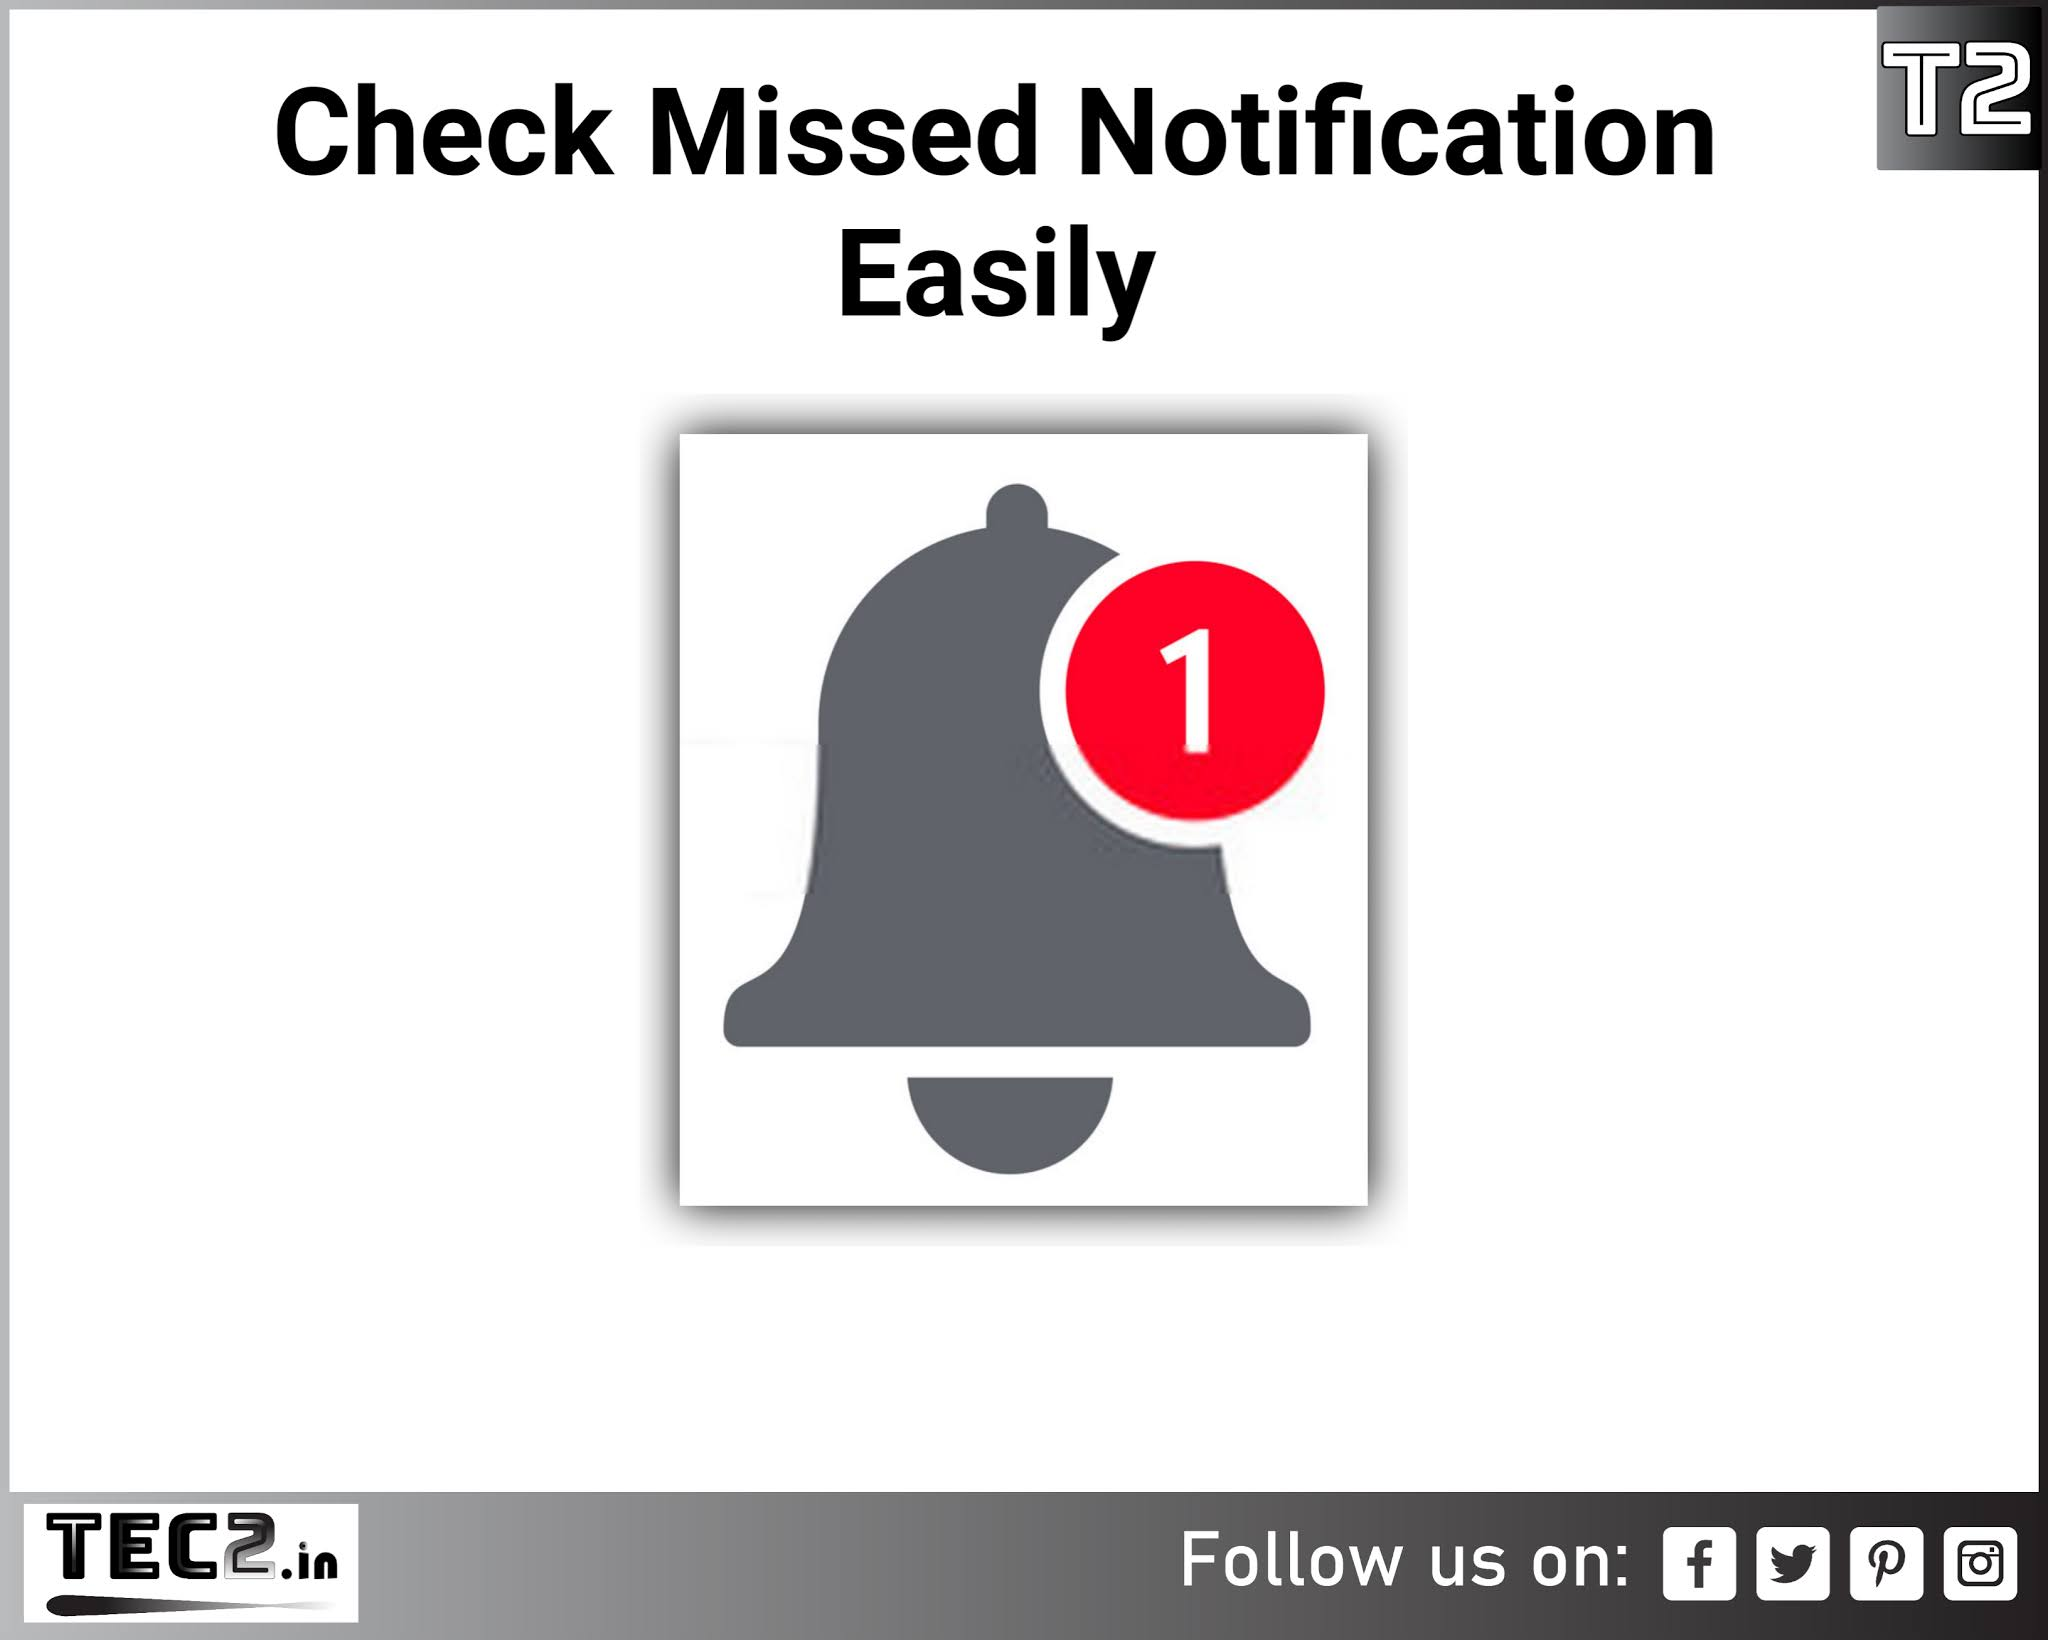 How to Checked Missed notifications easily: tec2.in